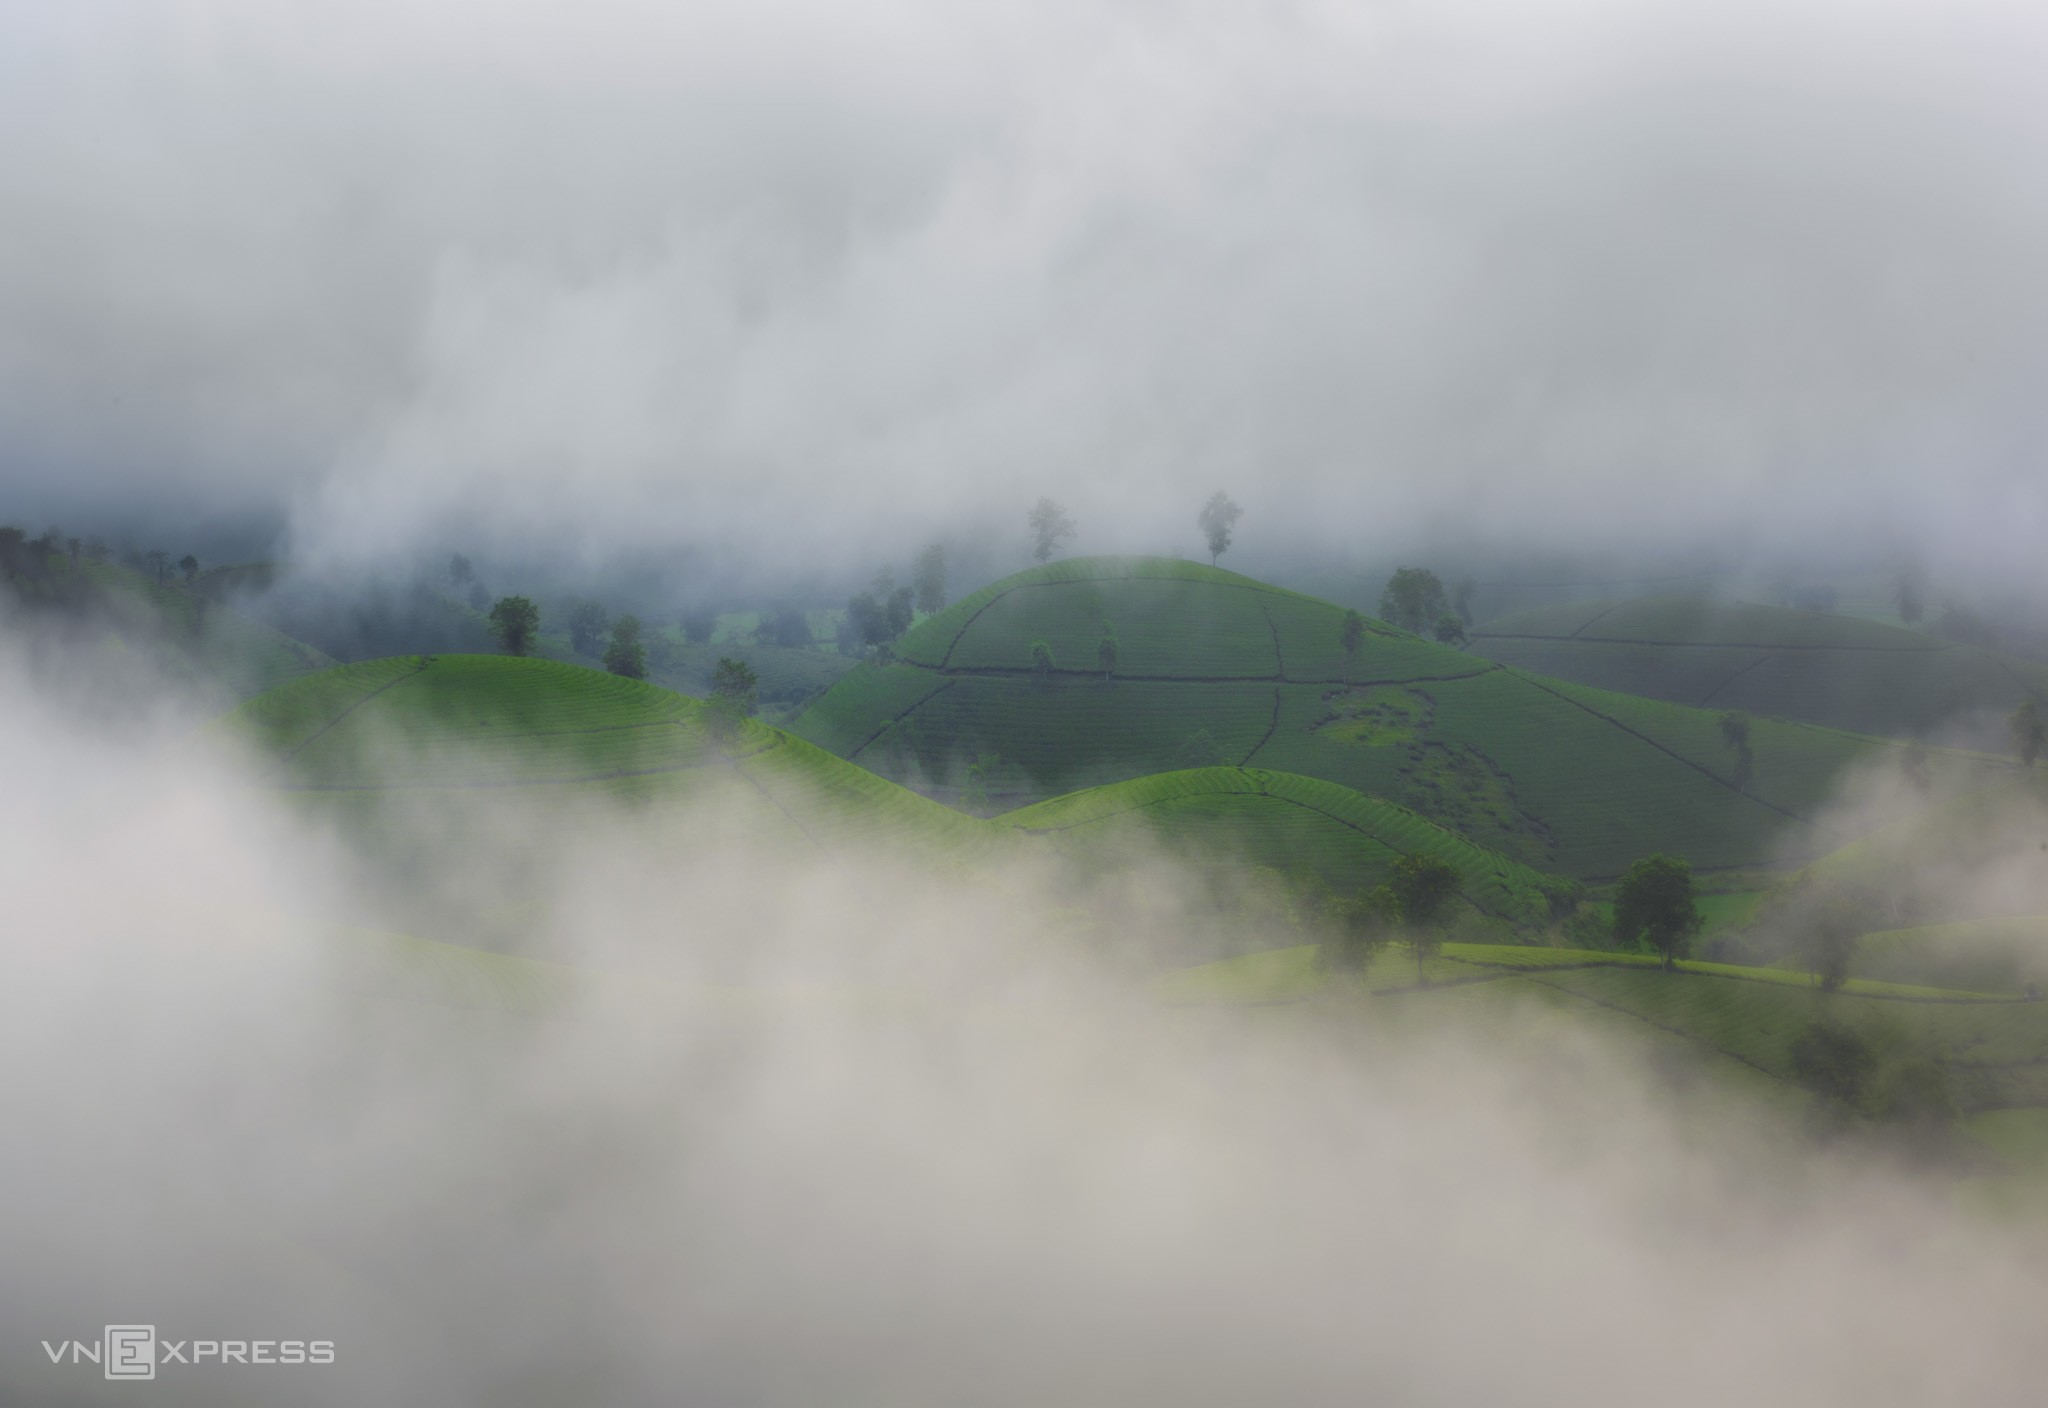 Long Coc tea hills turn lovelier as season change brings mist